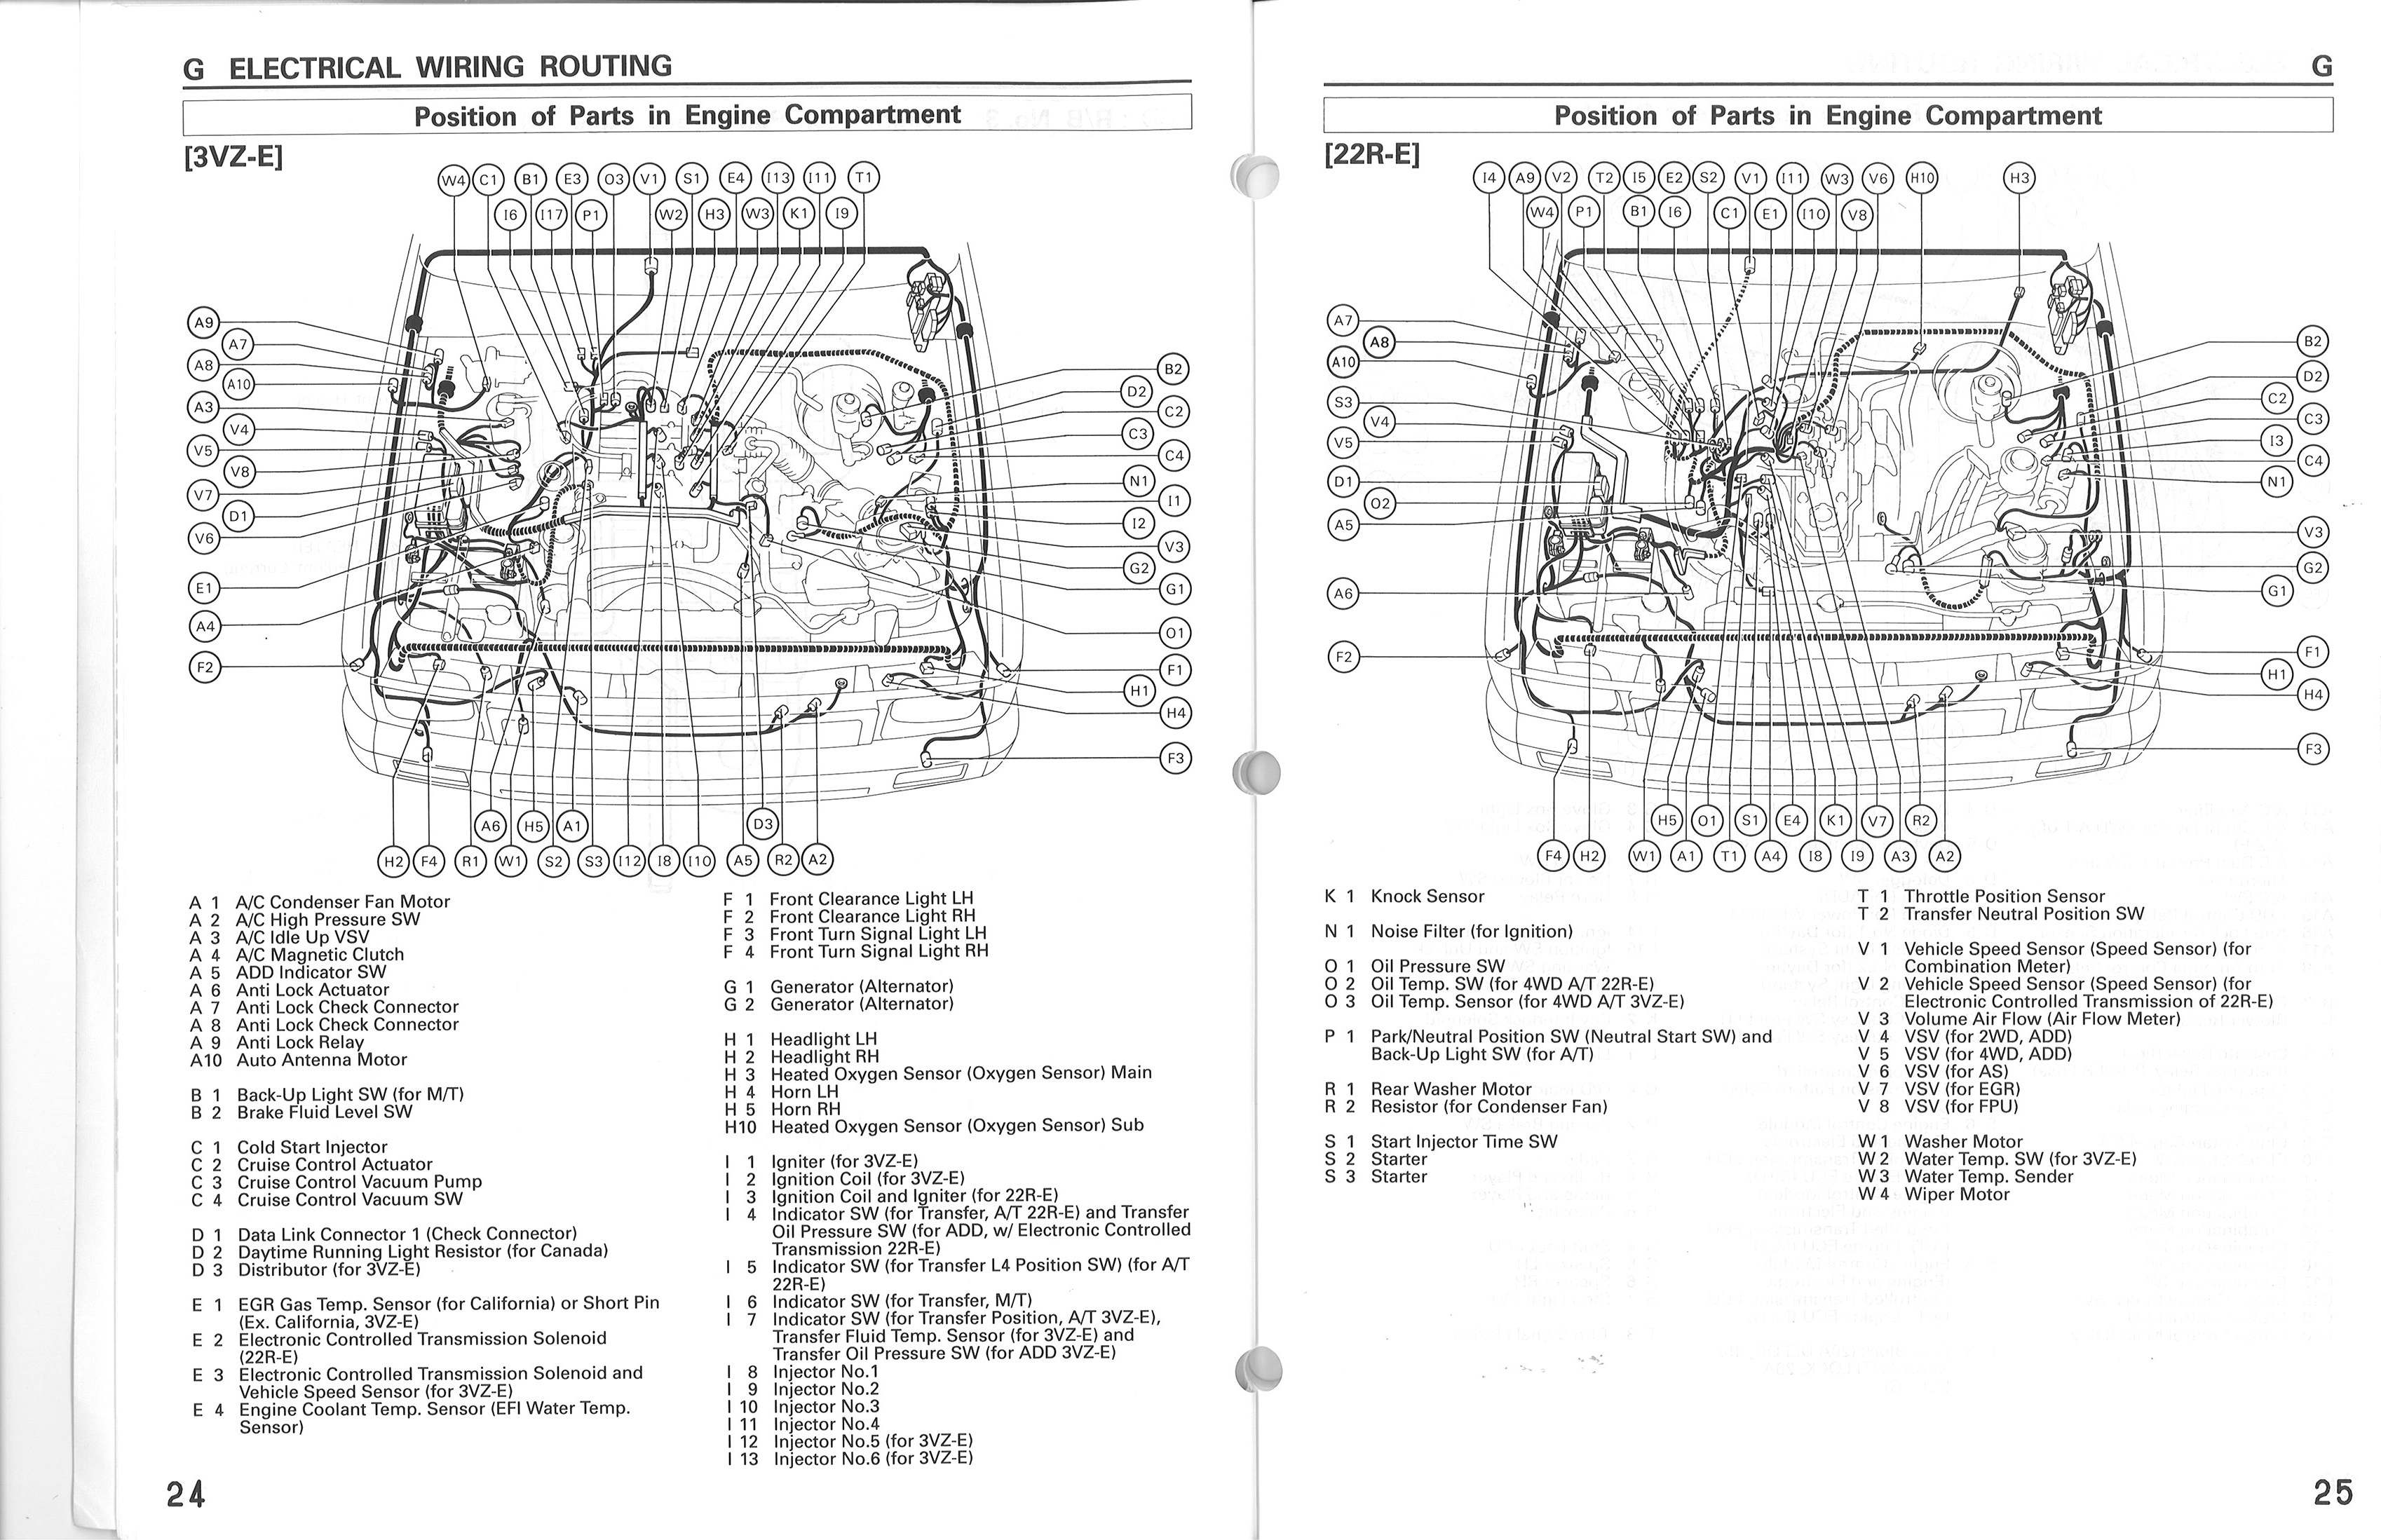 electrical diagram for 1995 wrangler with Wiring Diagram 87642 on 1989 Ford Bronco Fuse Box Diagram moreover How To Read Car Wiring Diagrams together with P 0900c1528008ab73 moreover 4jh55 Ford Need Wiring Diagram Tail Lights Only Work Winter together with 6ds8f Jeep Wrangler Sport Ok So Whole Story Jeep 1987 Jeep.